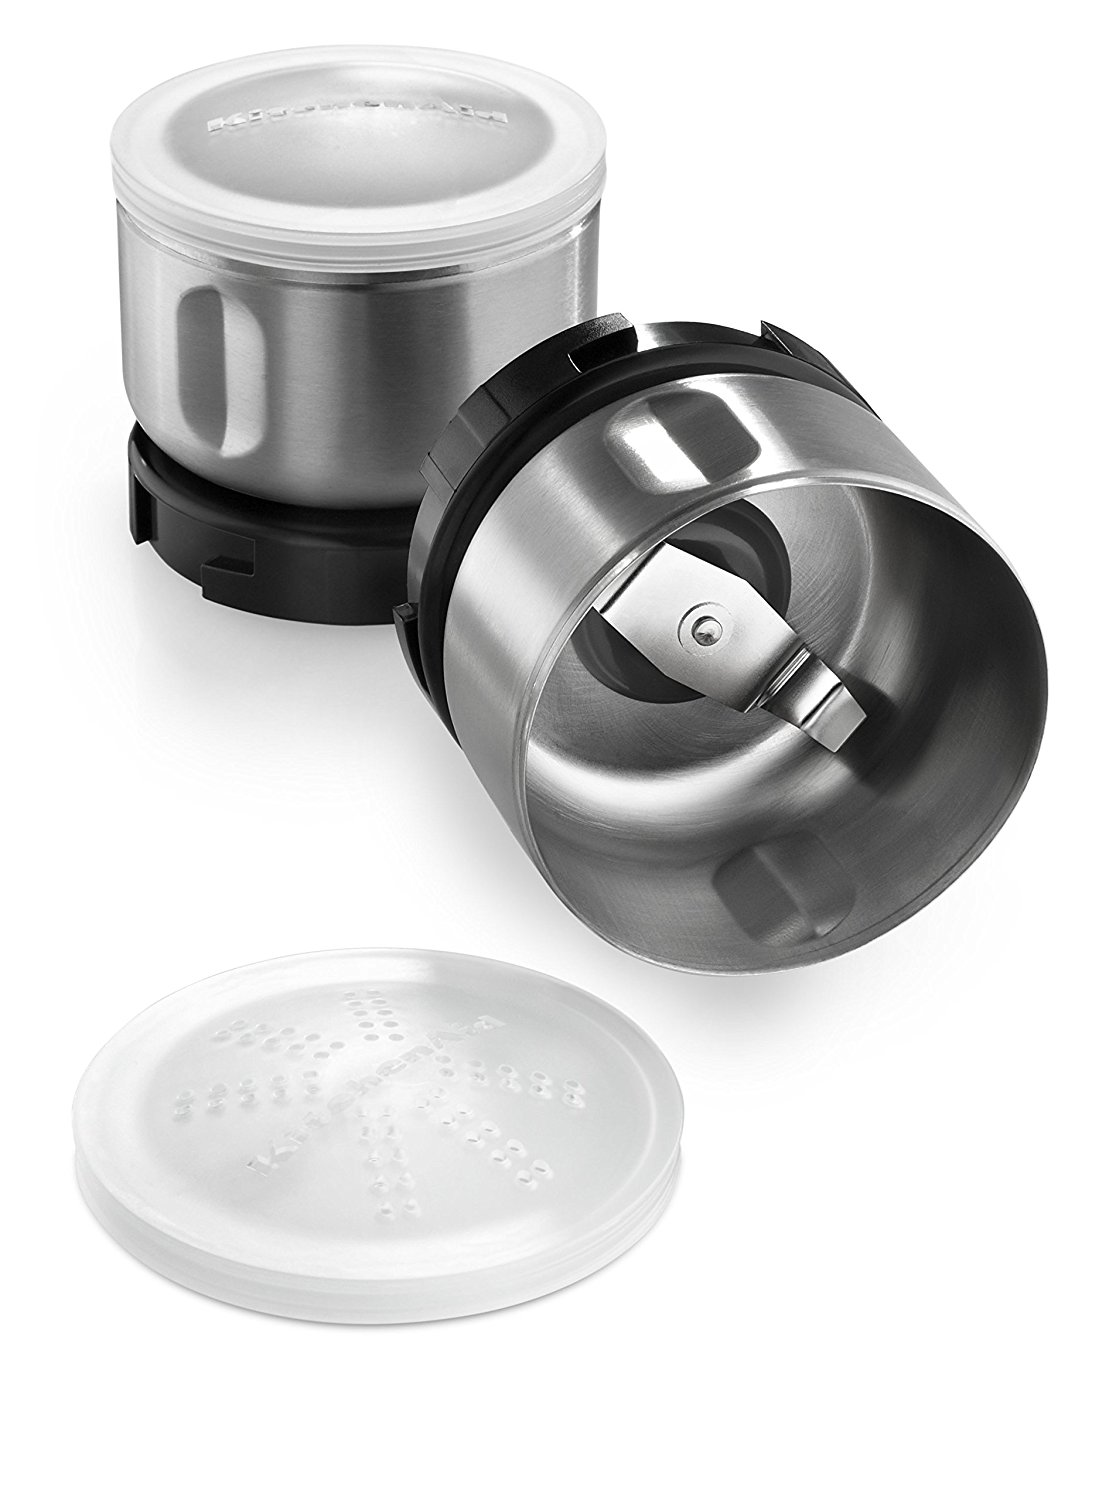 Bcgsga Spice Grinder Accessory Kit, Stainless Steel, Ship from USA,Brand KitchenAid by